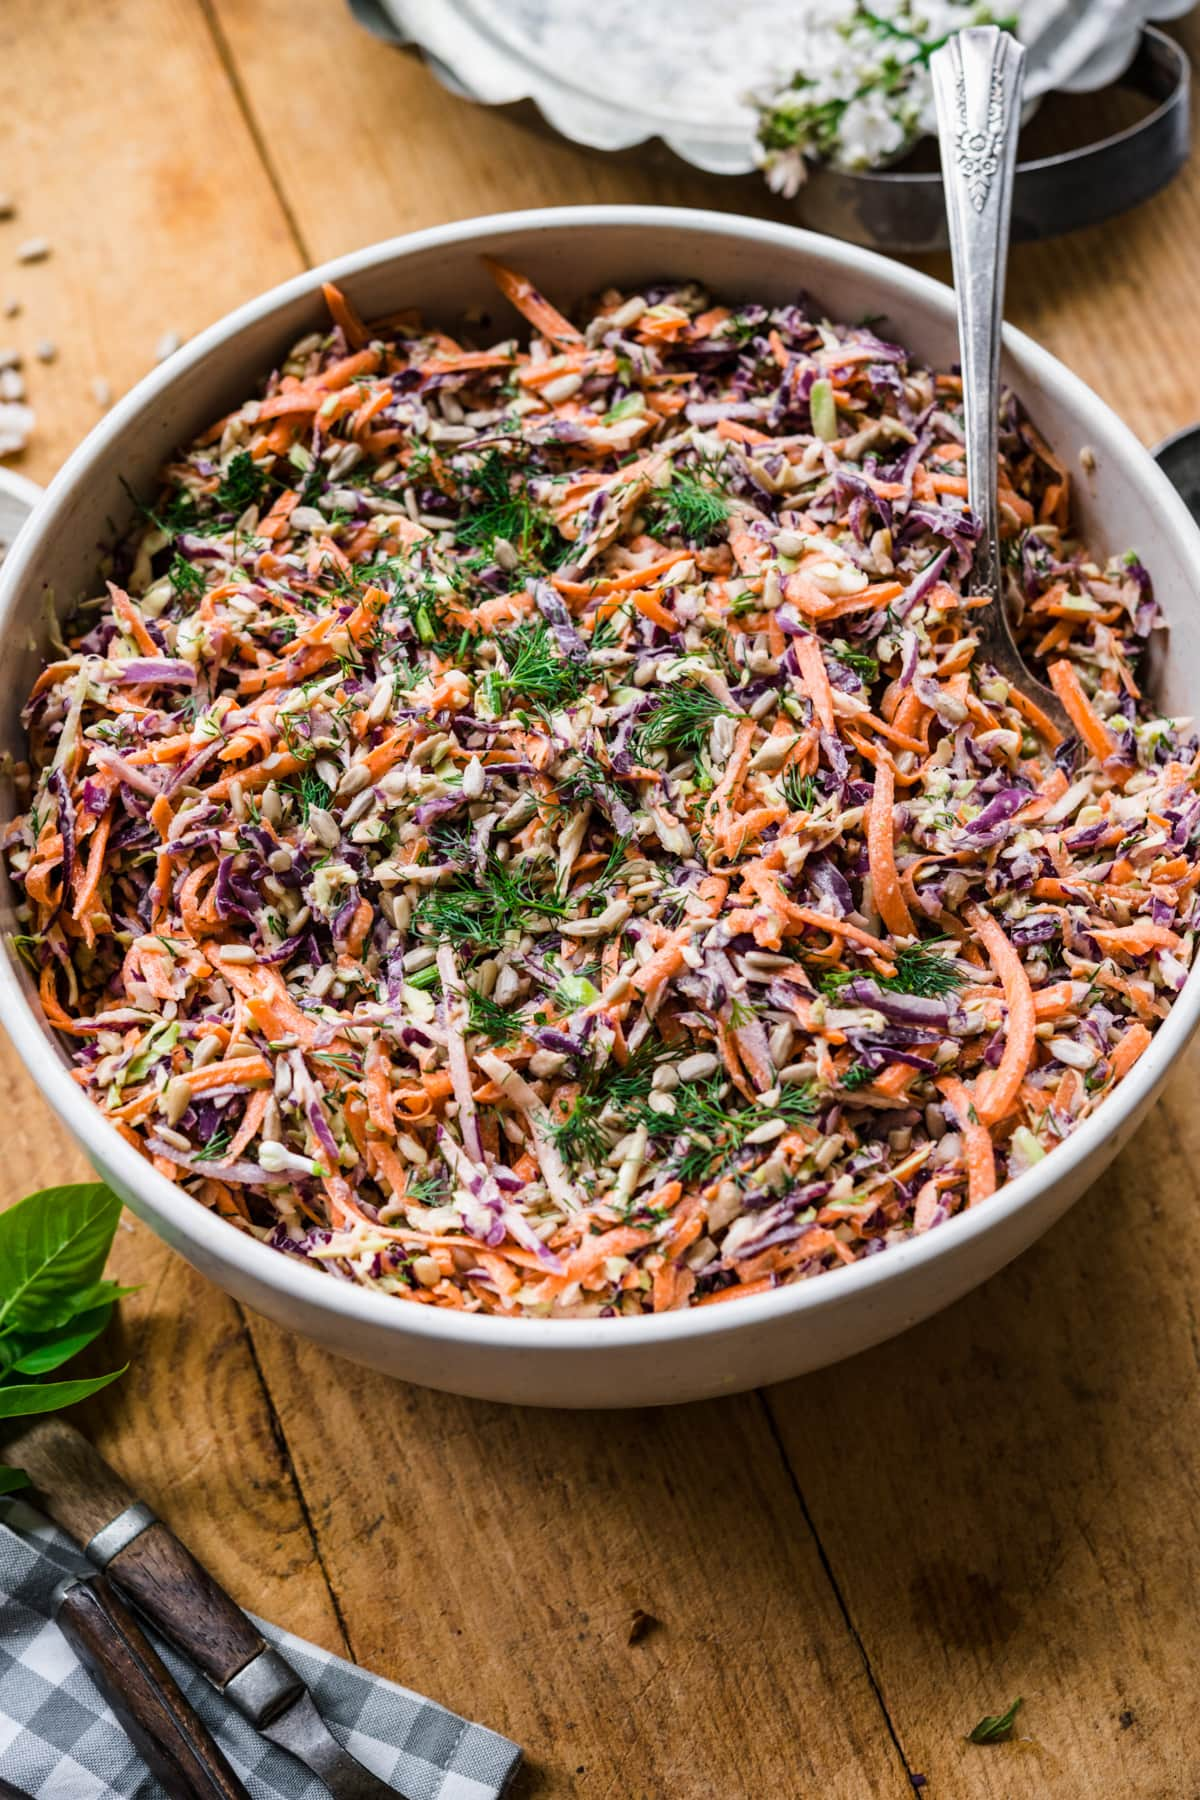 close up view of large bowl of vegan coleslaw with serving spoon on wood table.